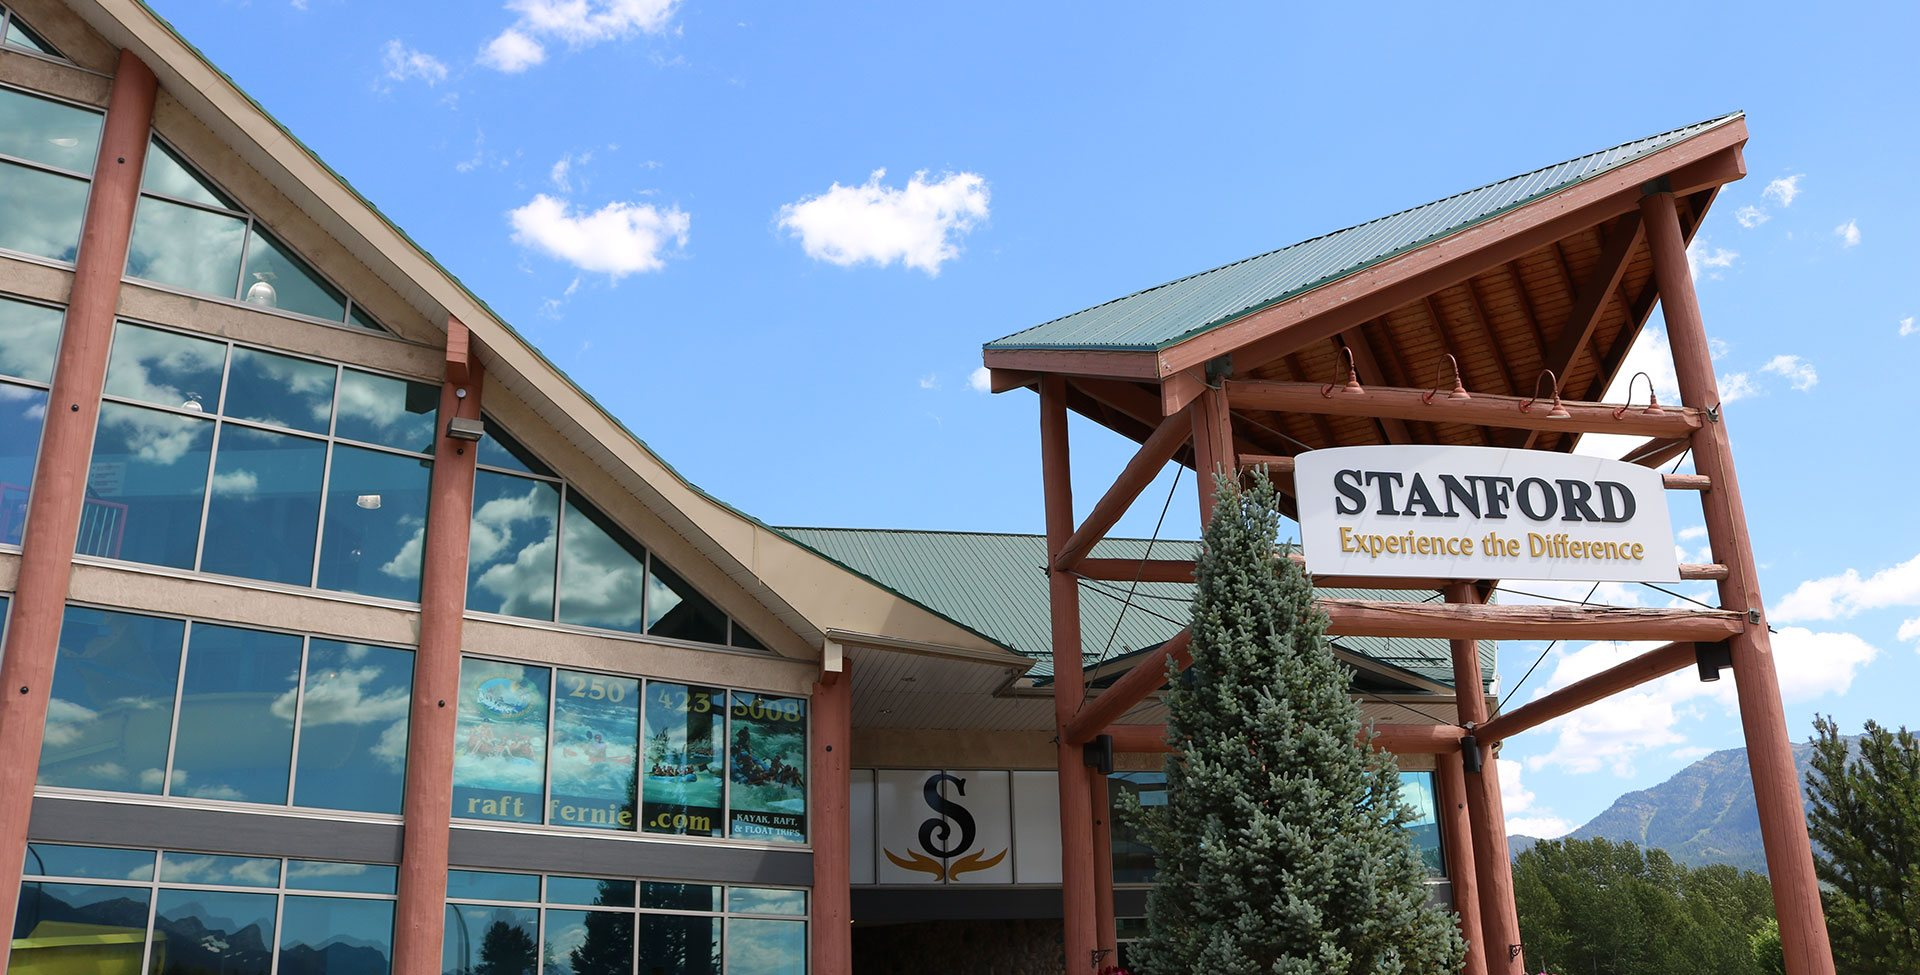 A skyward view of the multiple levels of picture windows of the Stanford Fernie Resort with its' corporate logo placed over the entrance and the log built portico bearing the large rectangular company sign.